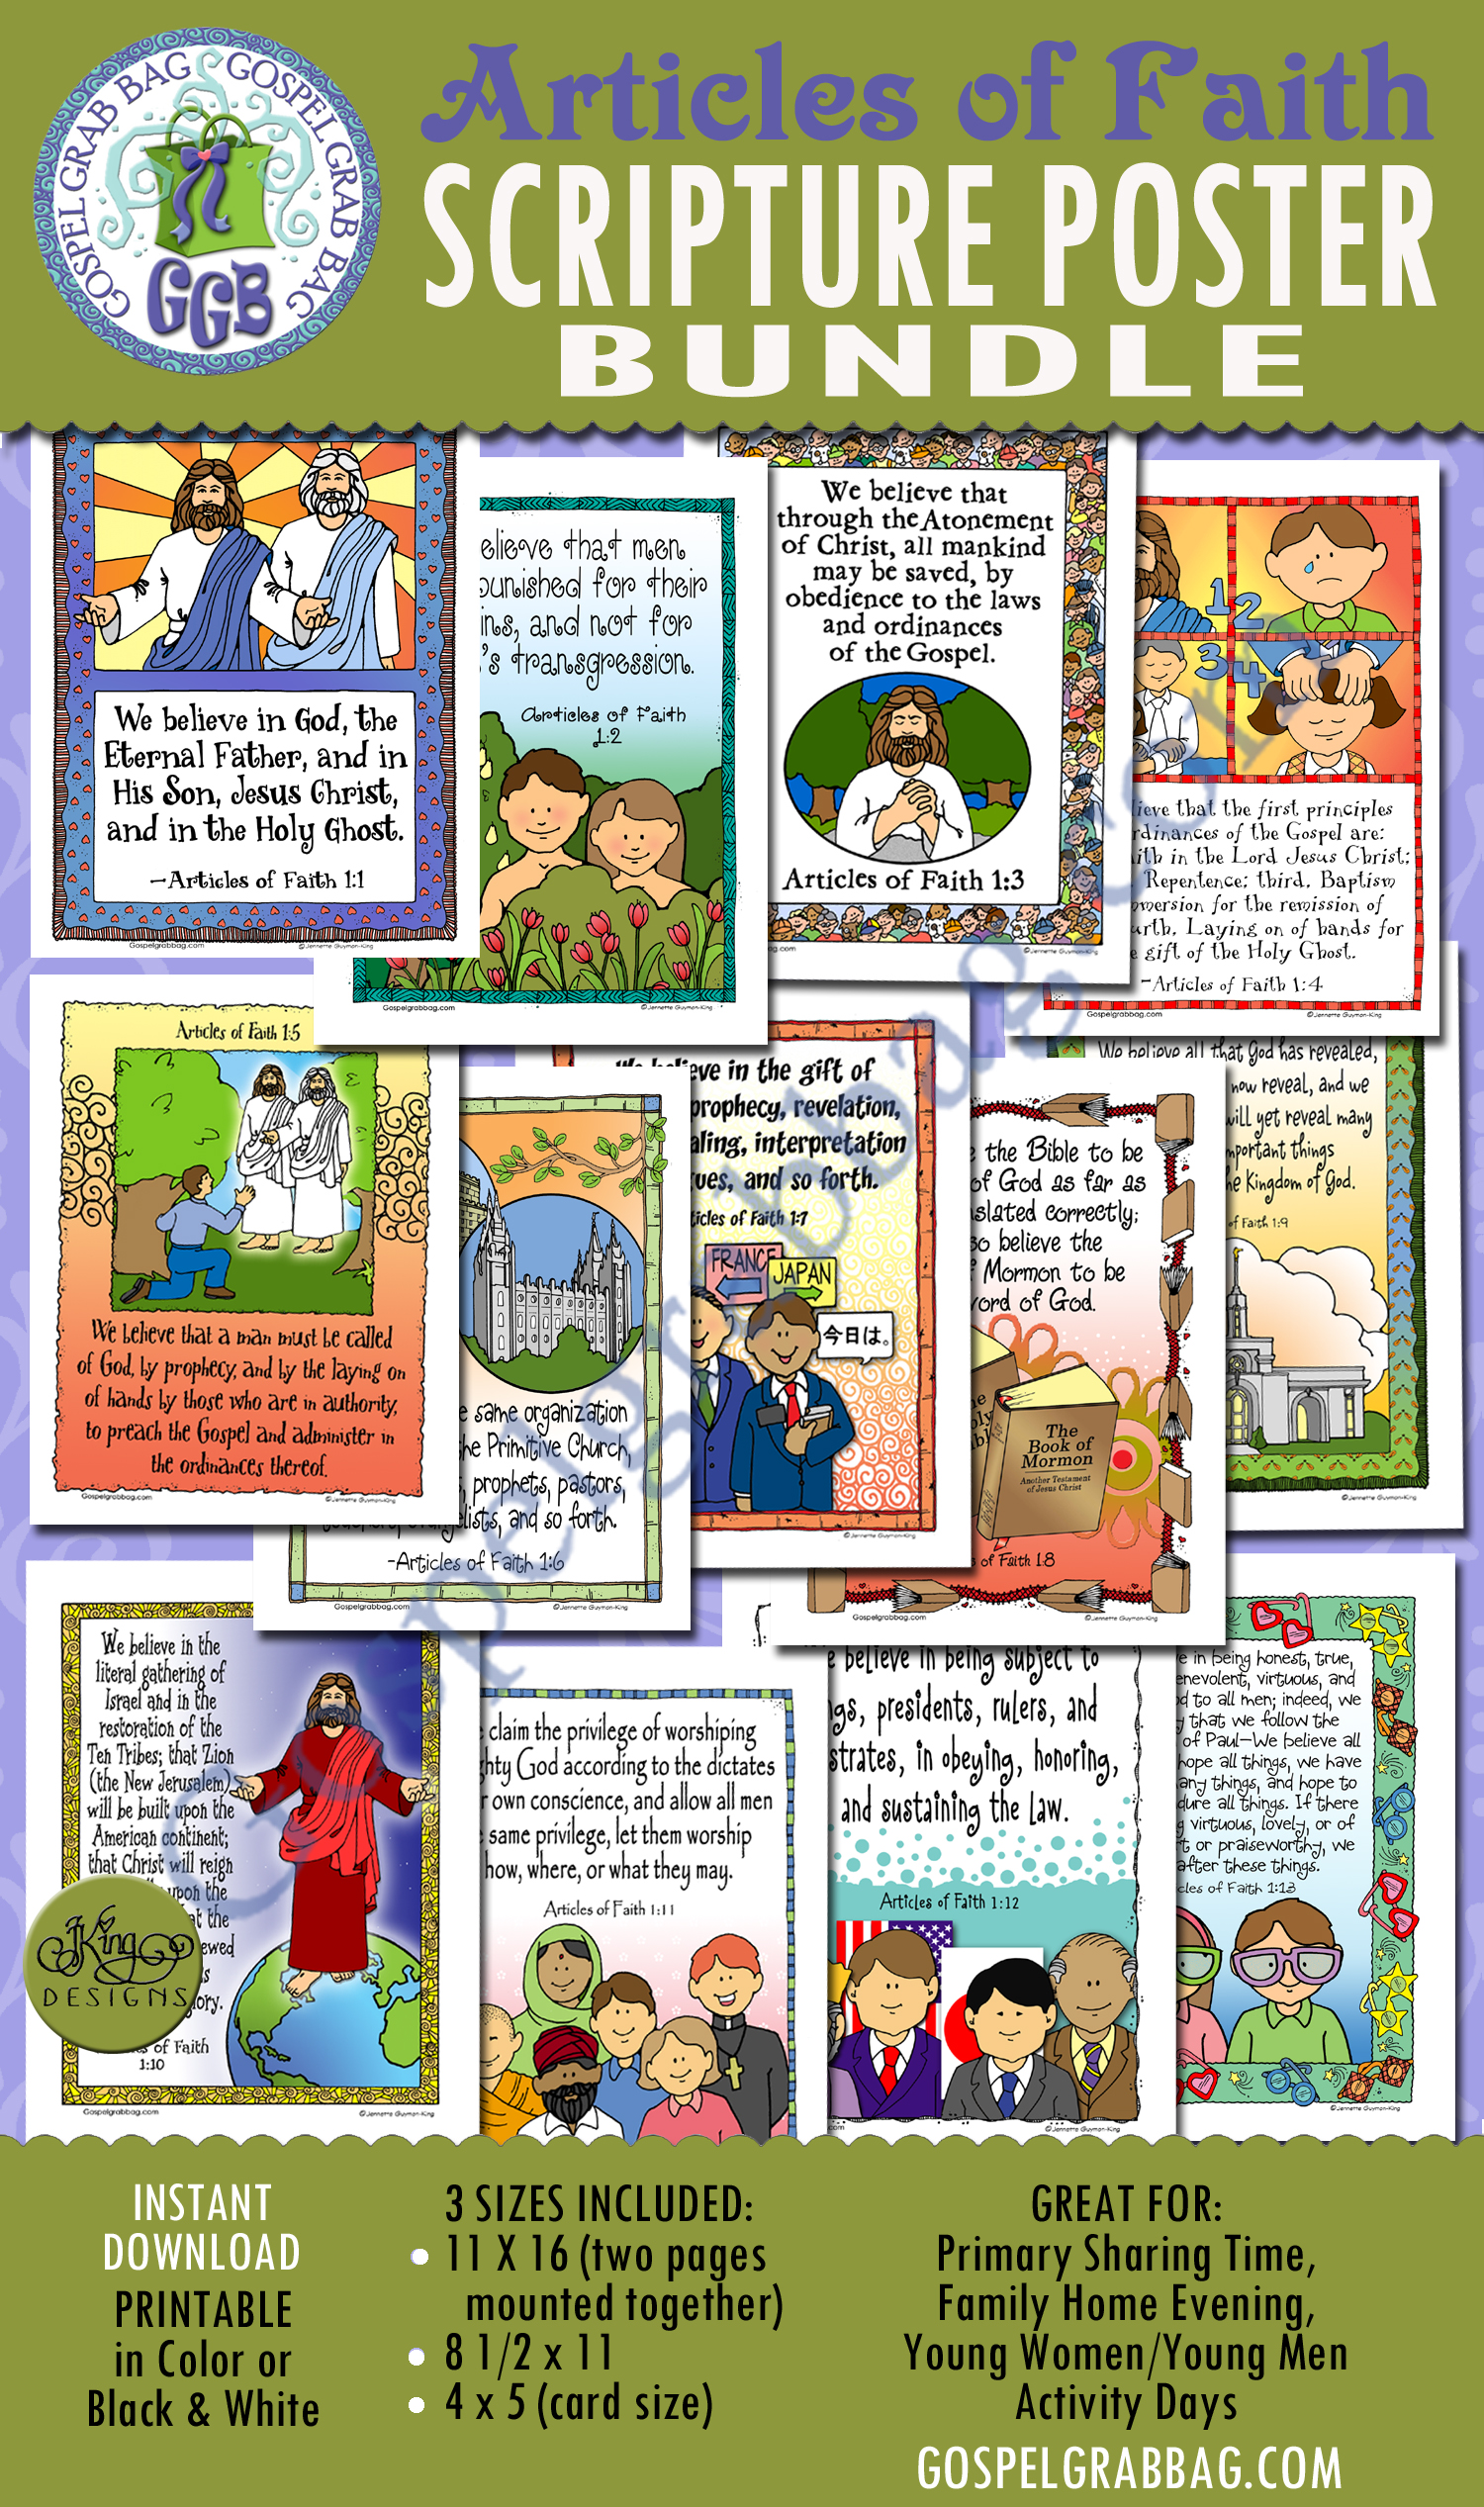 13 Articles of Faith BUNDLE, printables to download from GospelGrabBag.com